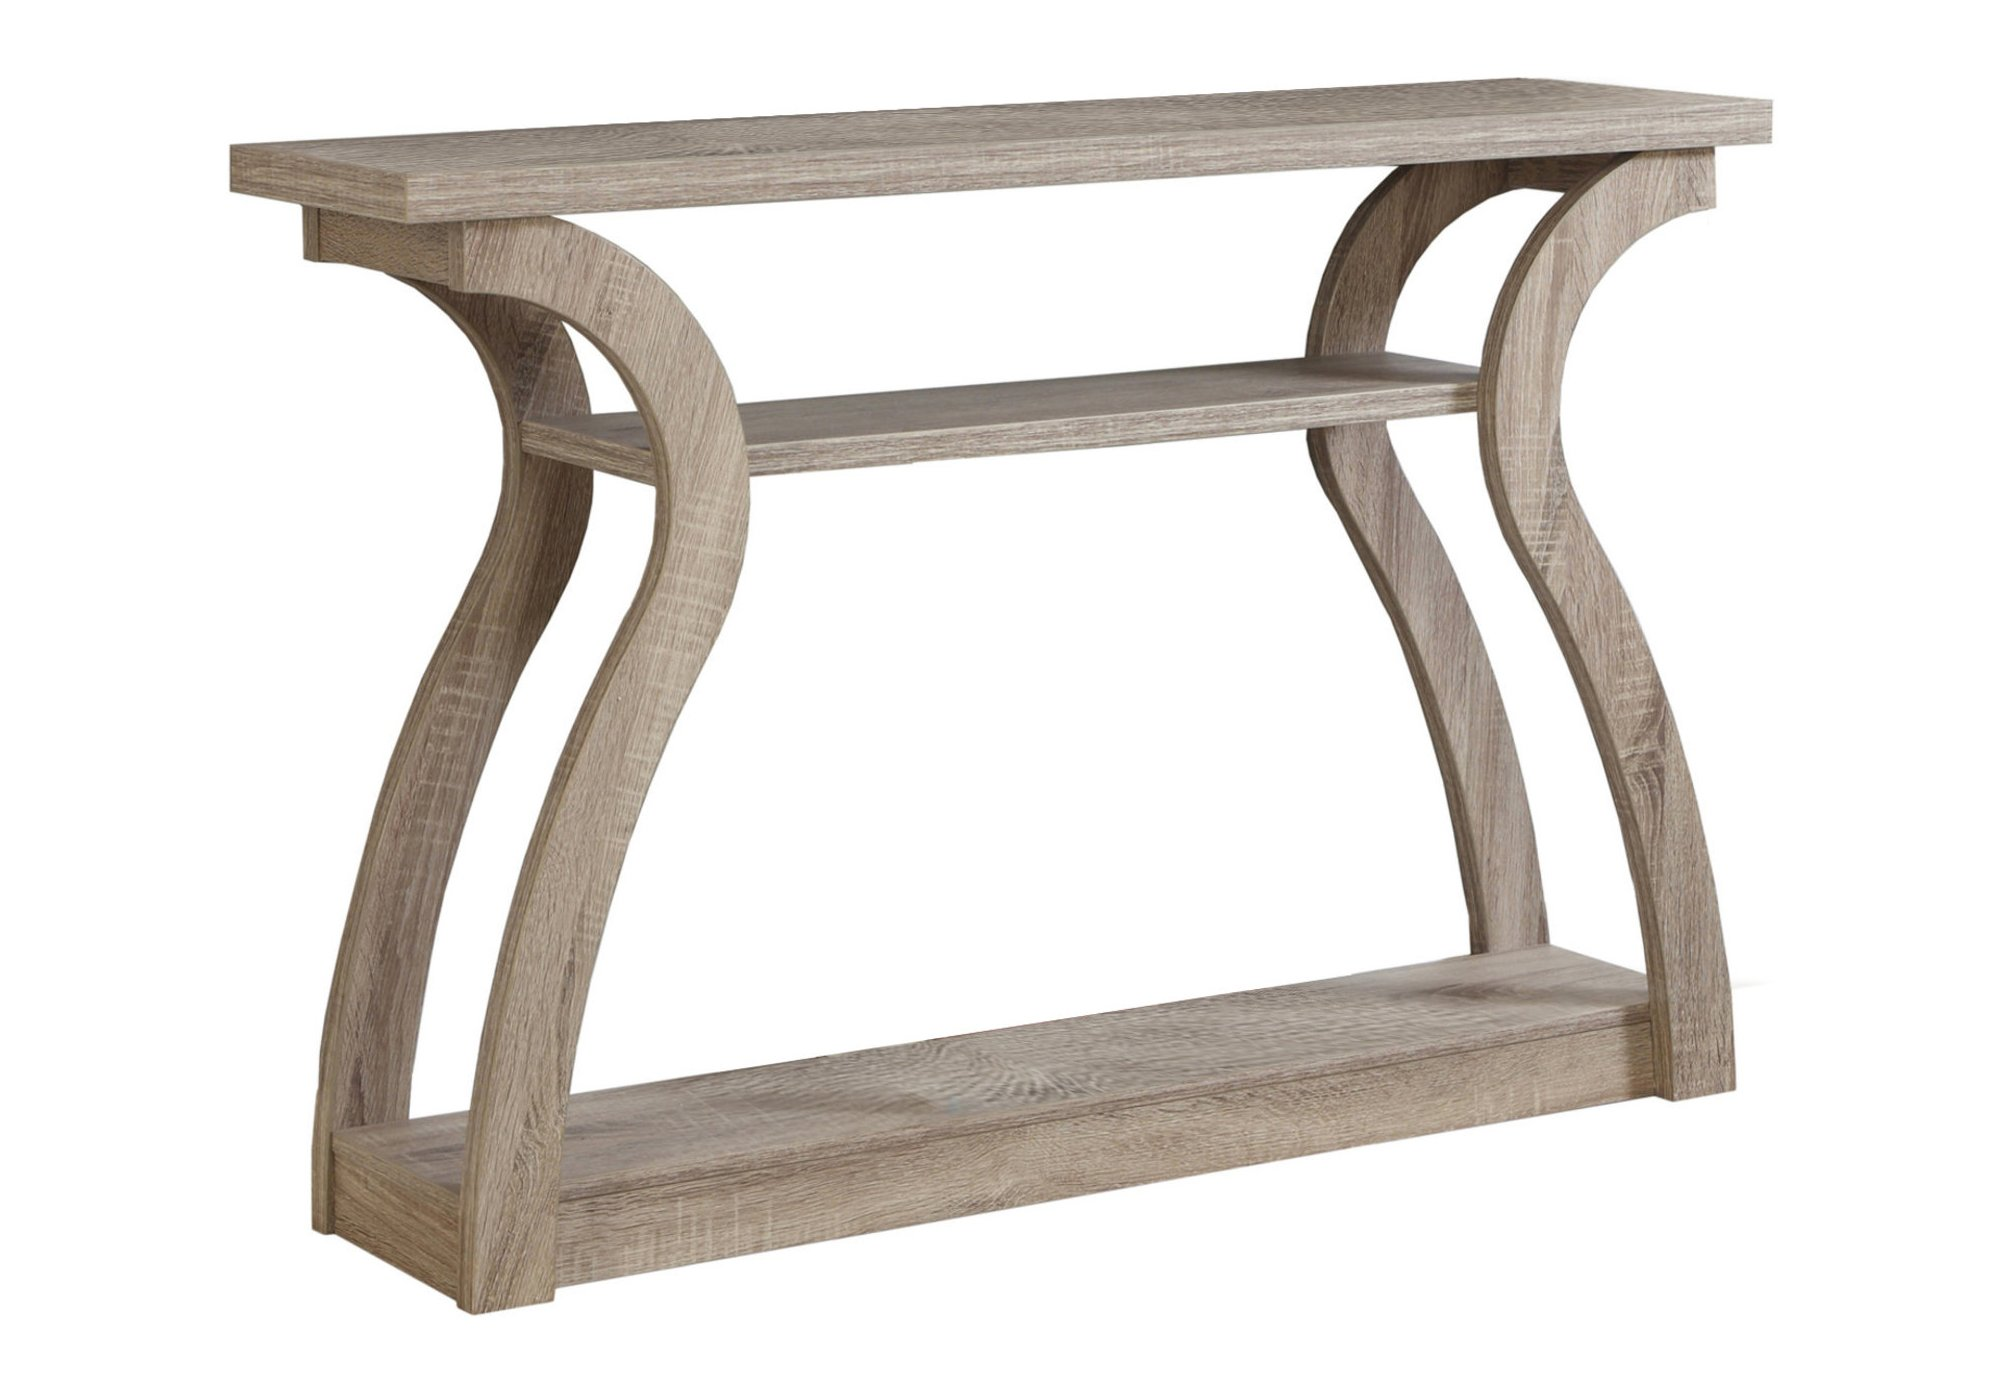 Monarch Specialties I 2446, Hall Console, Accent Table, Dark Taupe, 47''L by Monarch Specialties